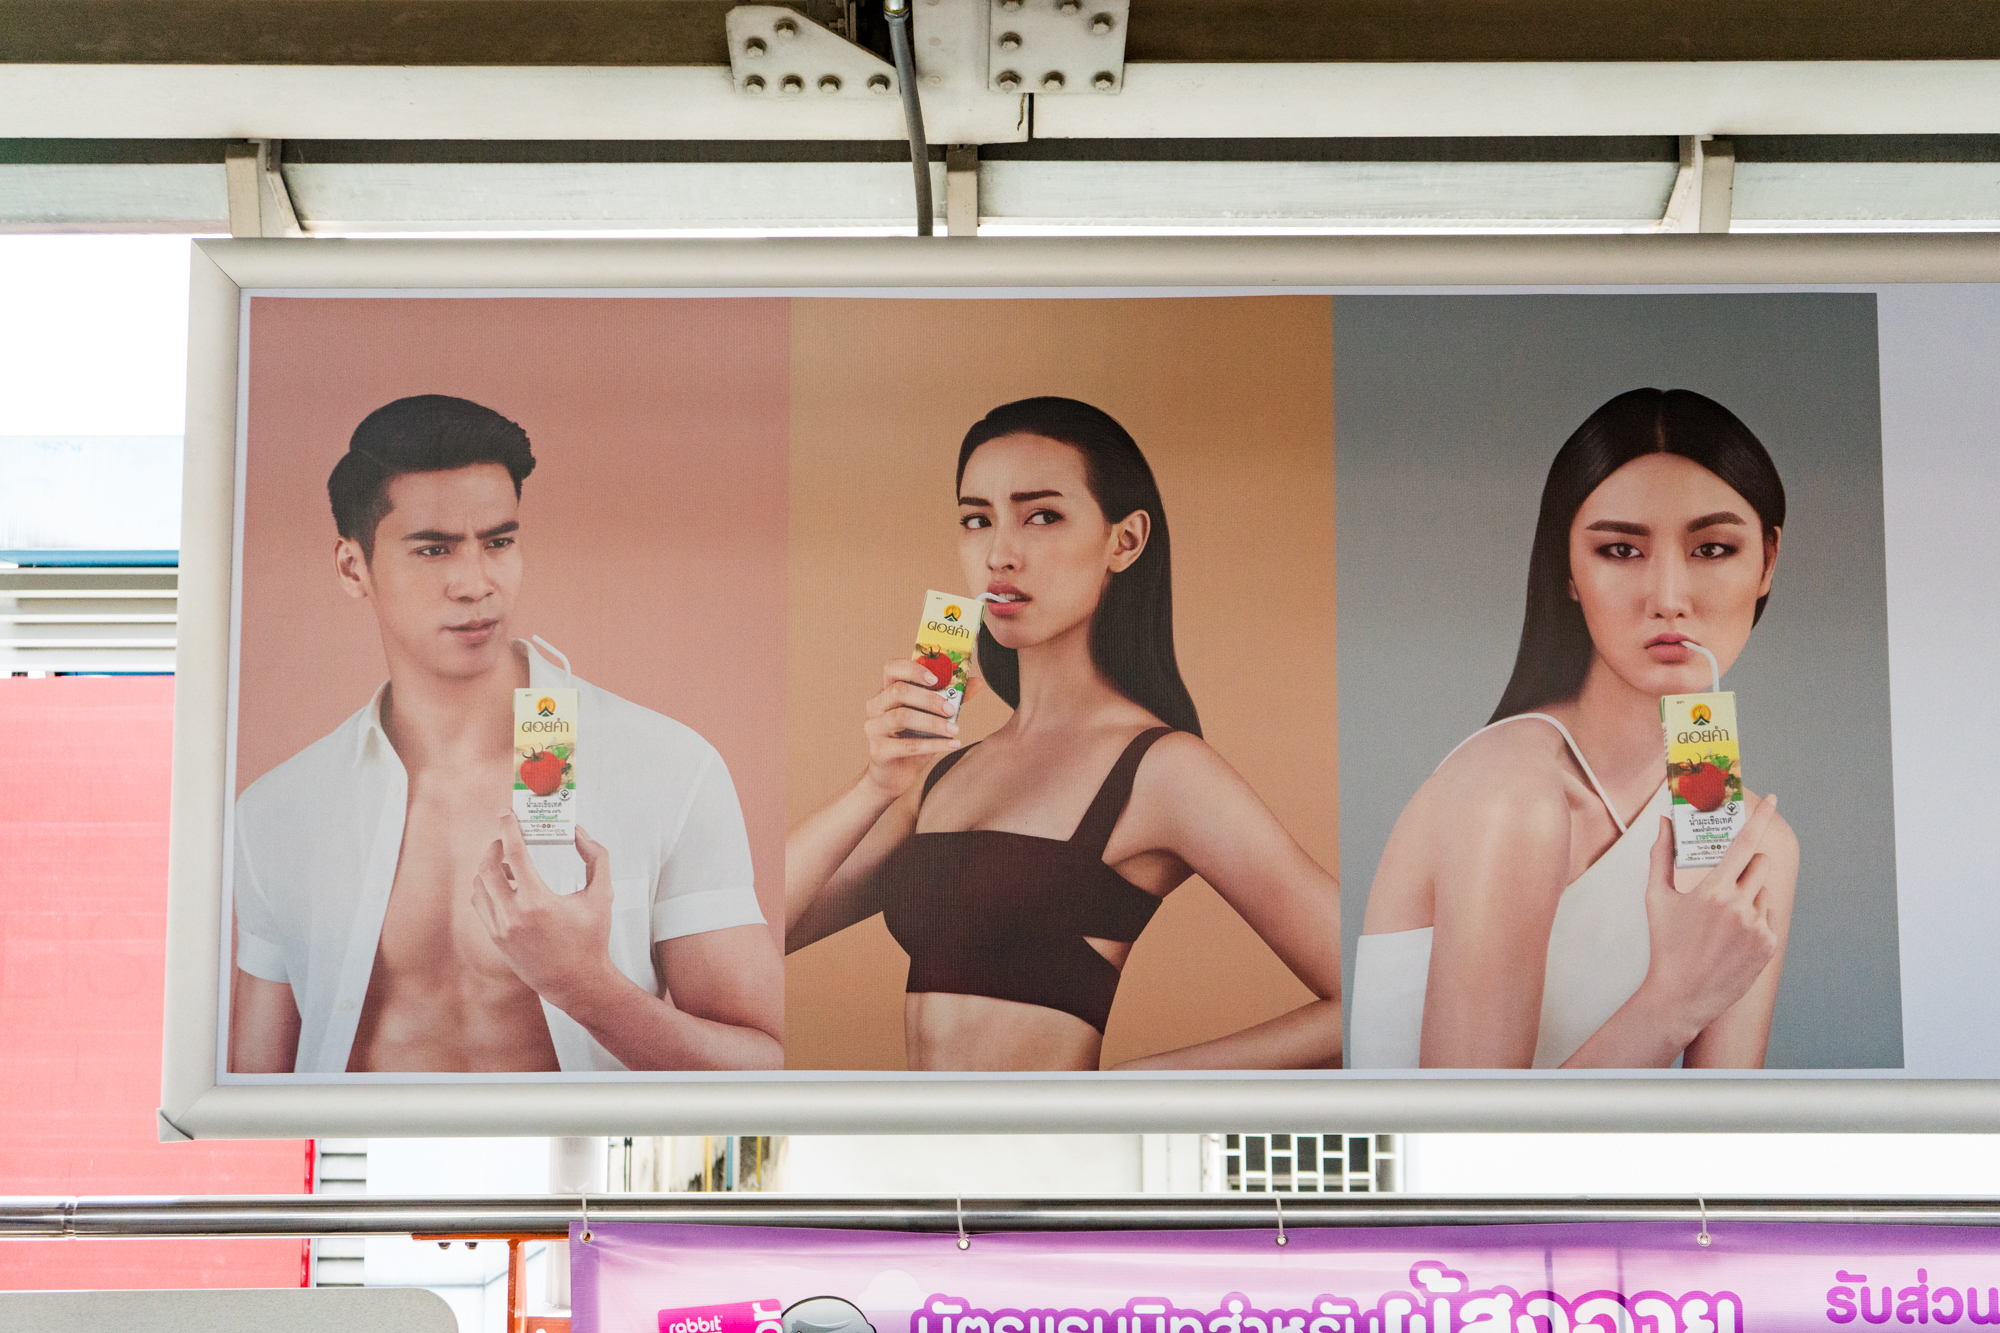 Hapa Ads in Thailand